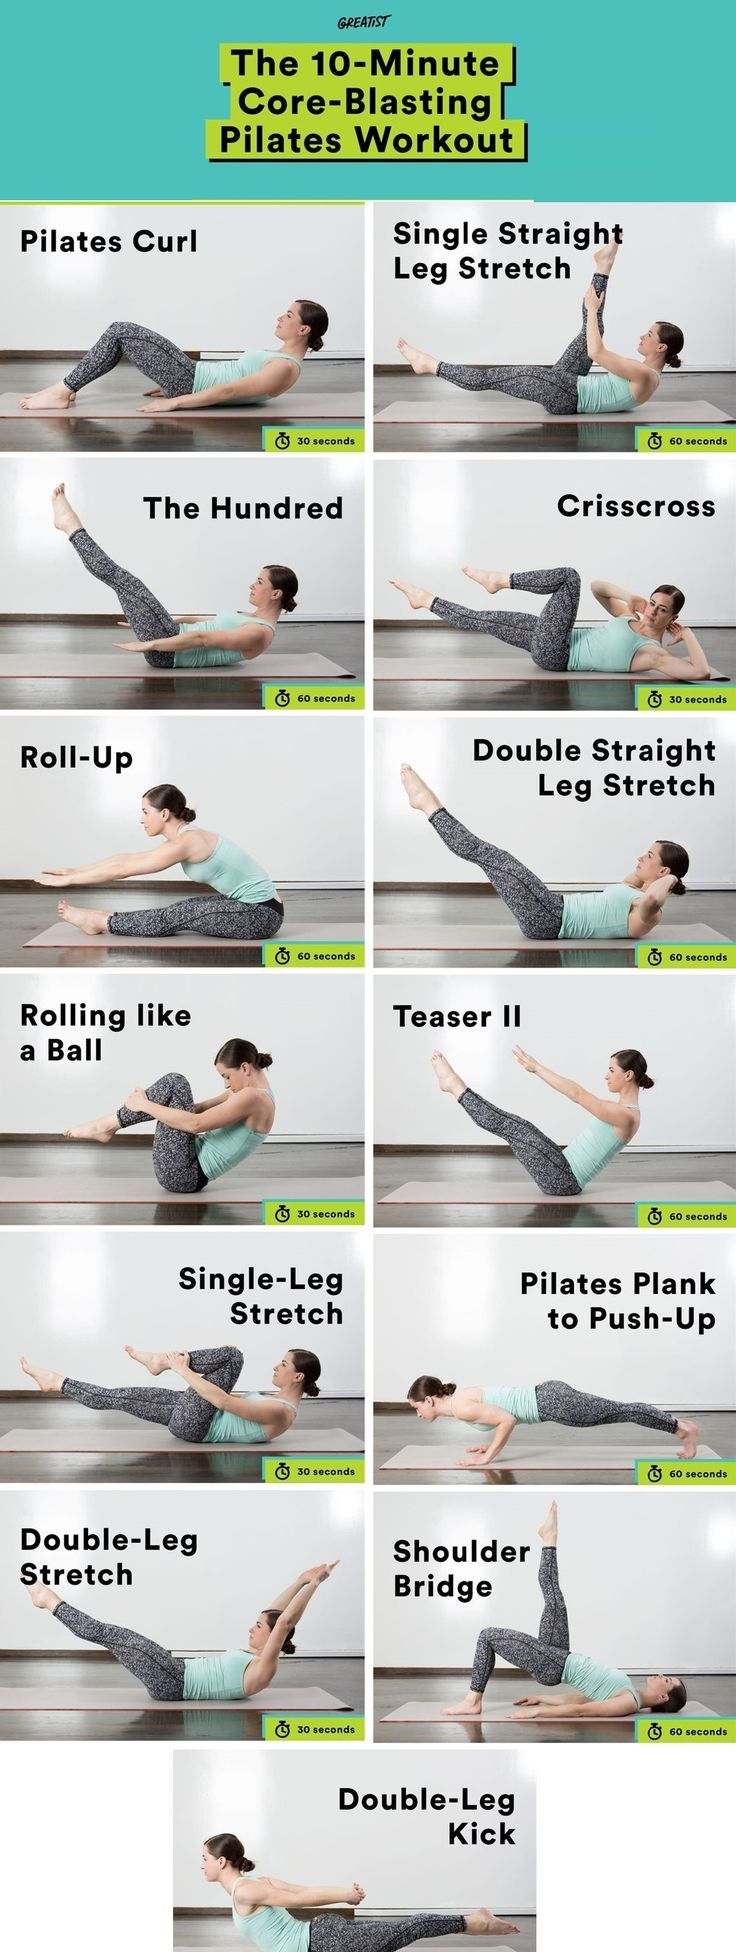 10 Minute Core-Blasting Pilates Workout #pilatesworkoutroutine